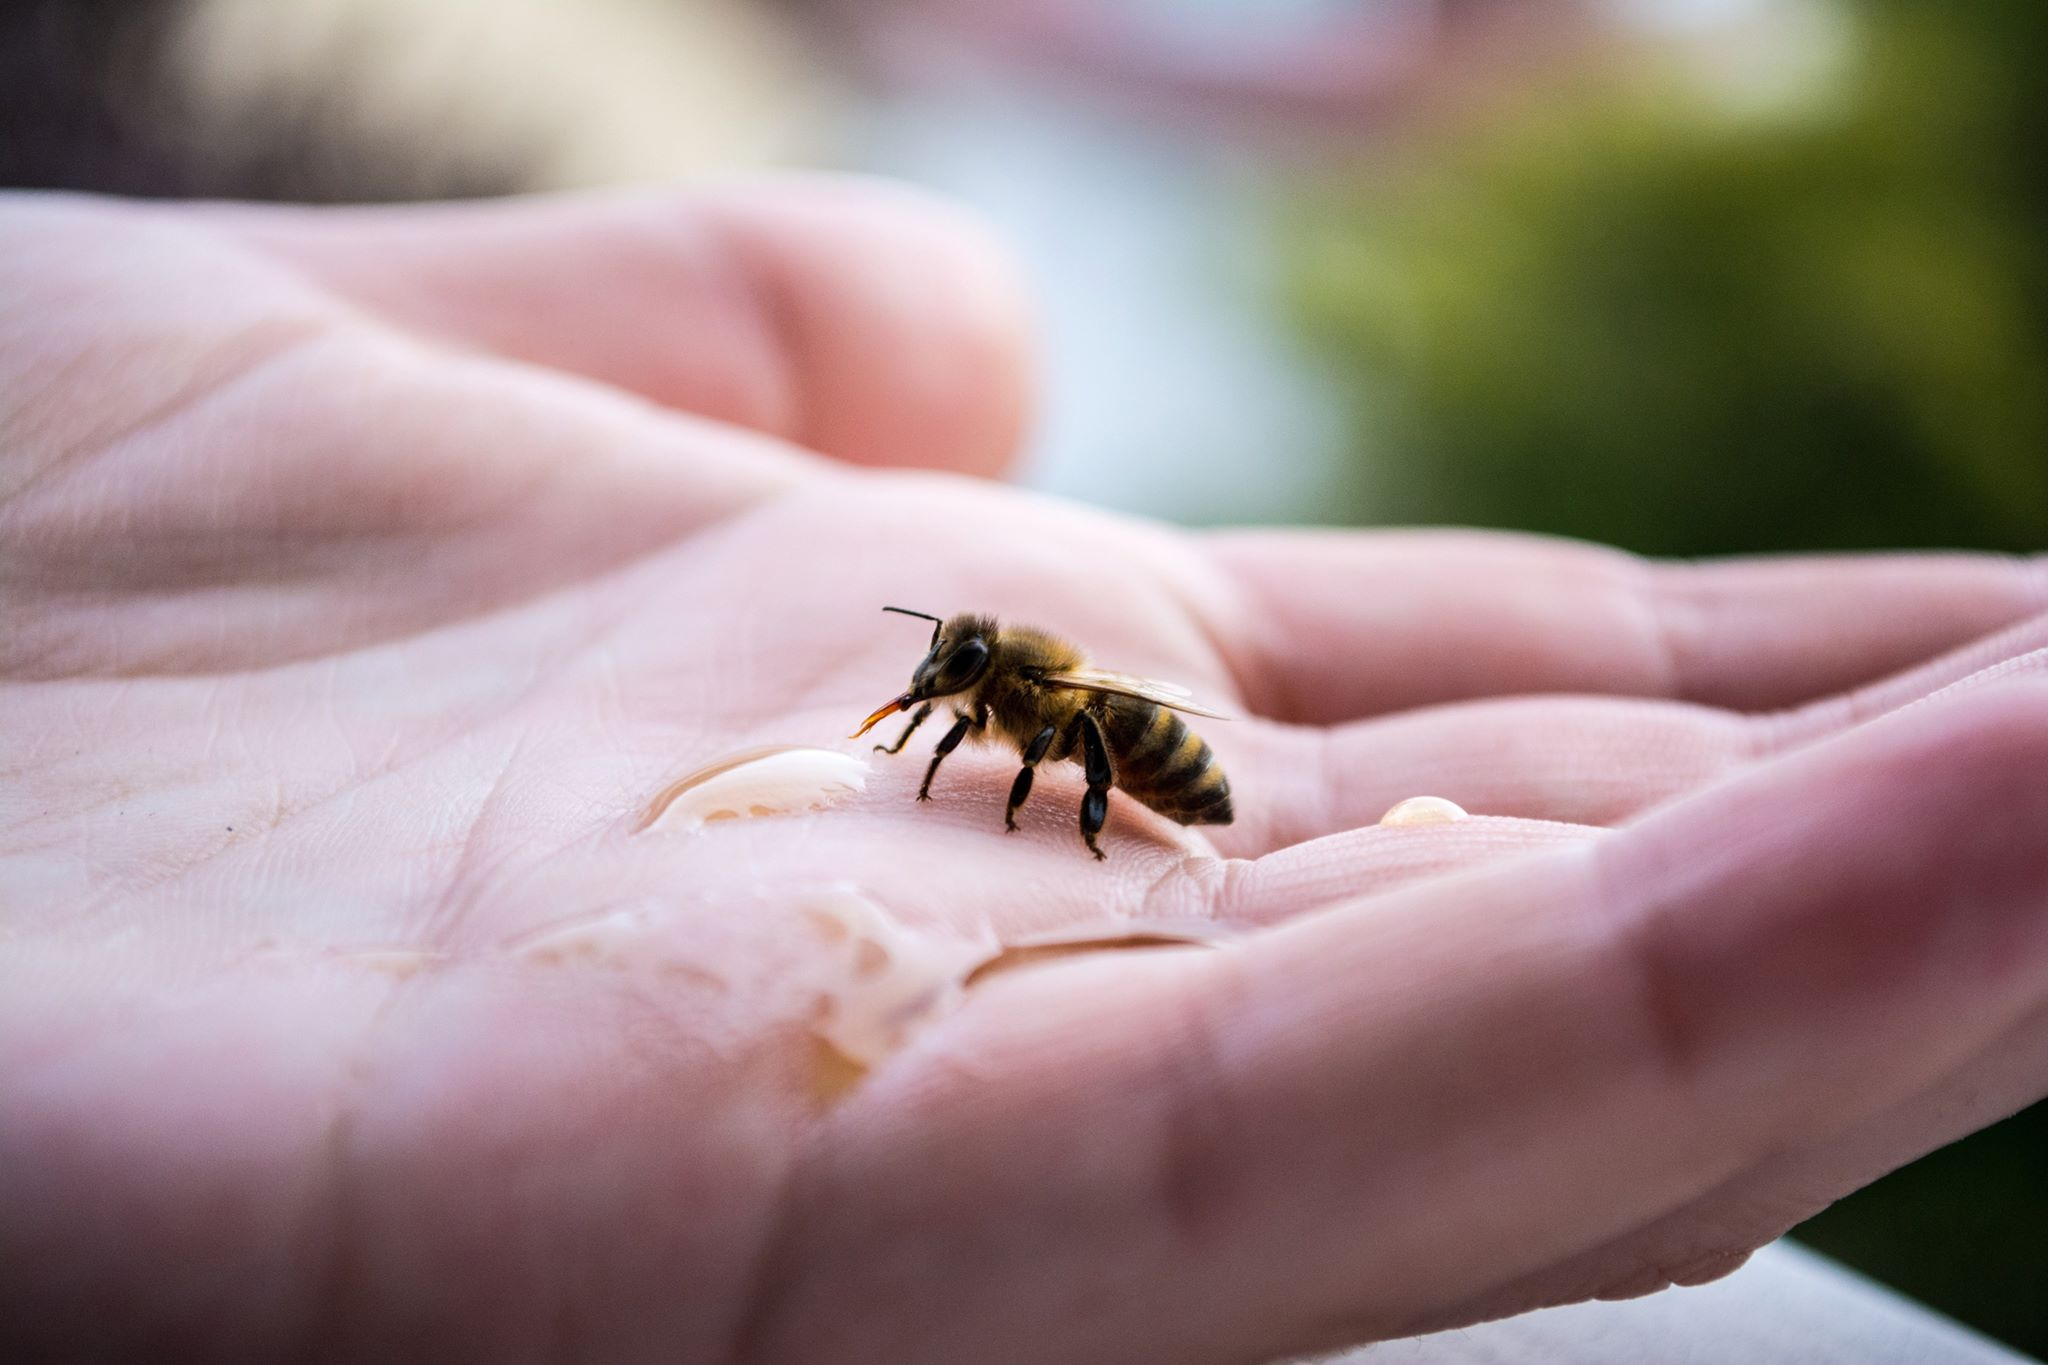 How to Revive a Bee - A bee drinking on a hand